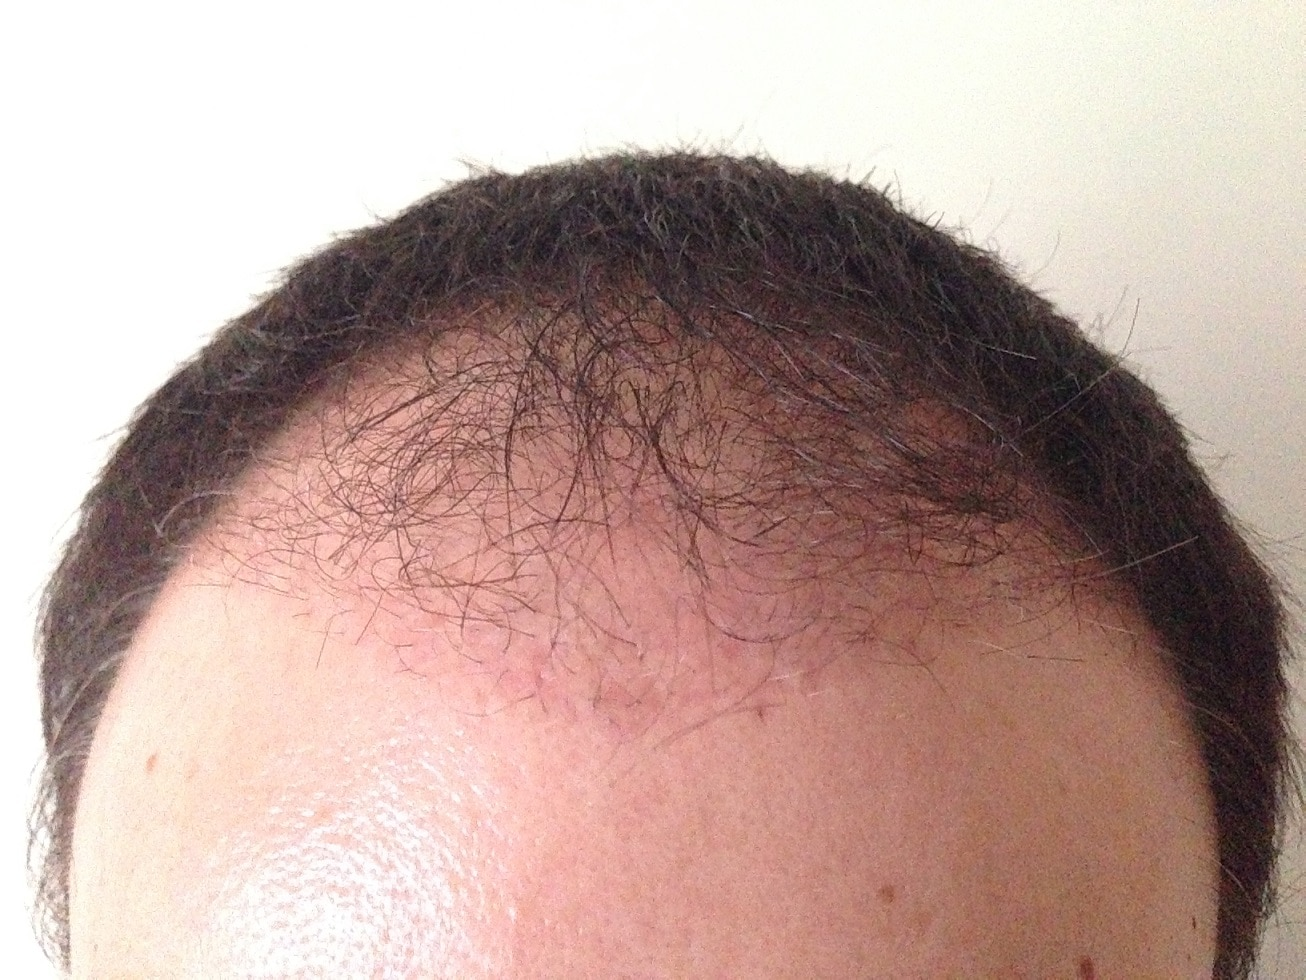 3 months after hair transplant